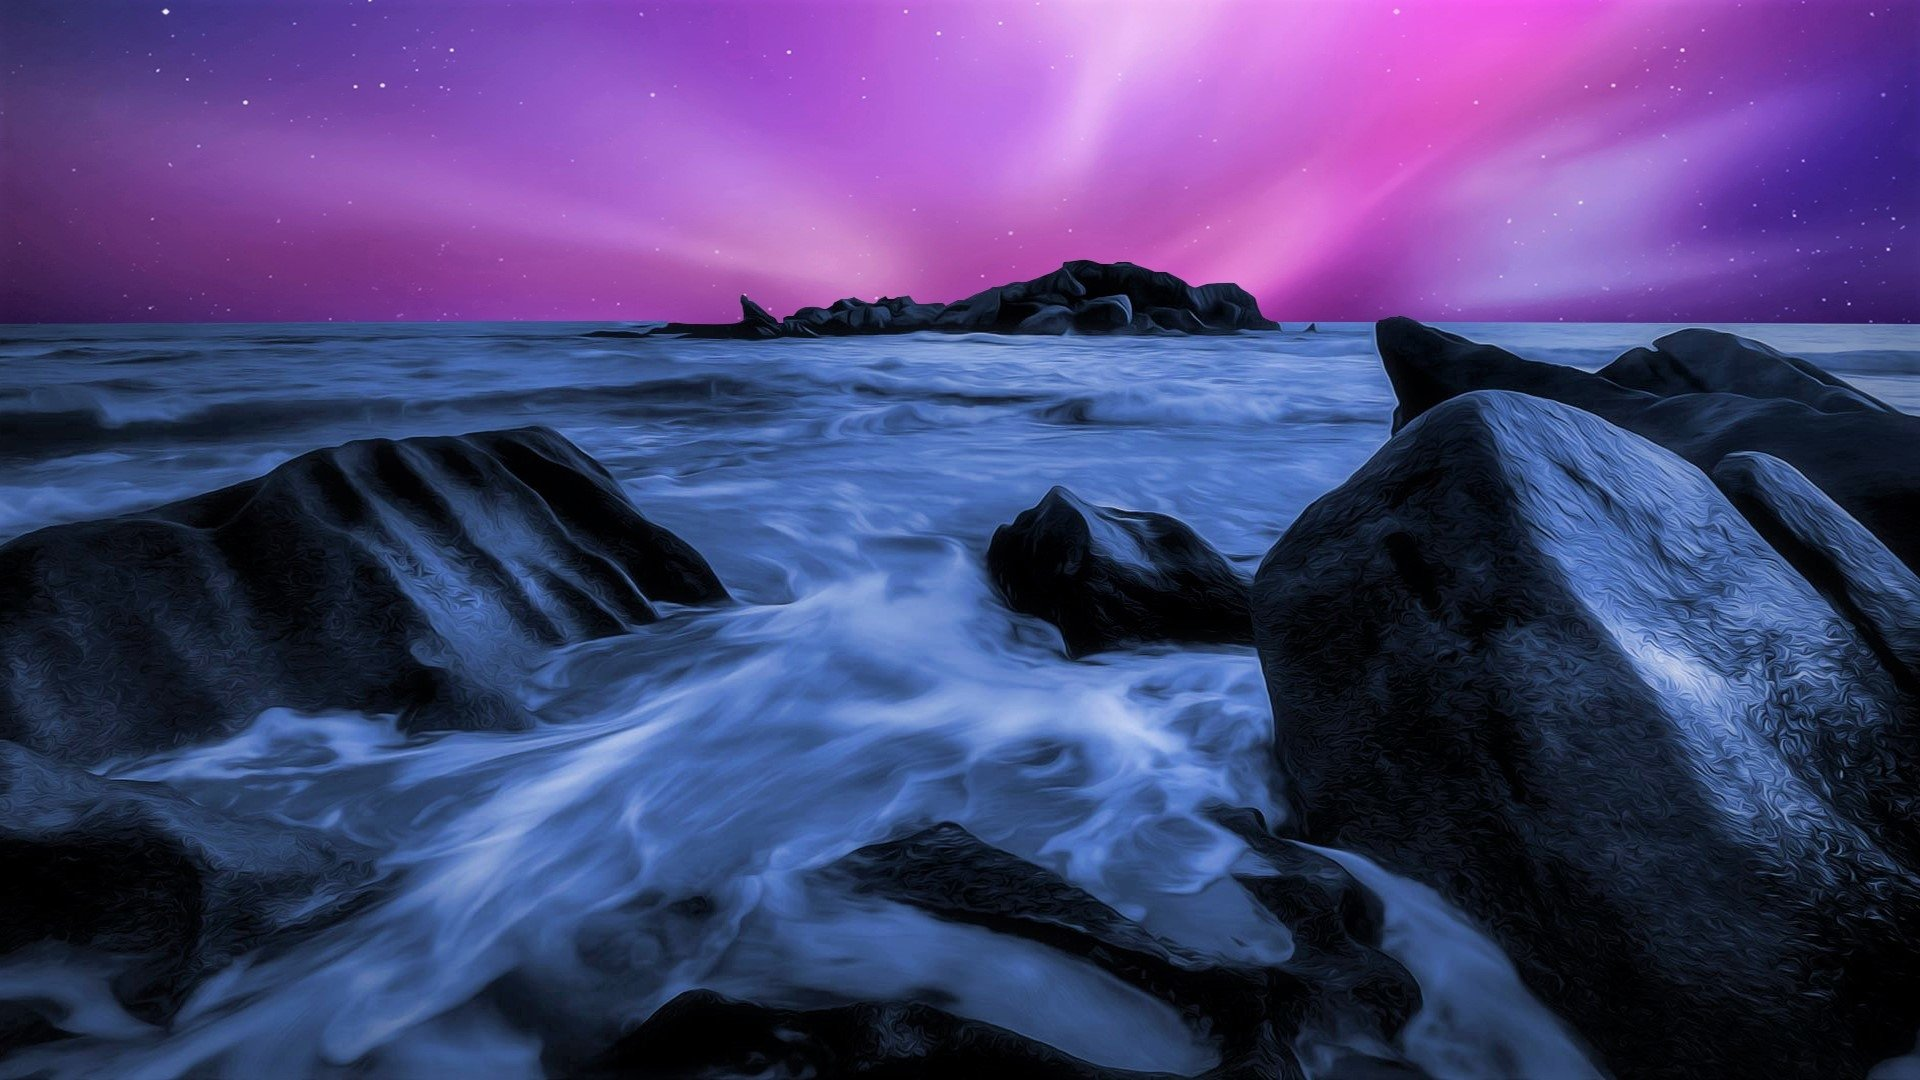 Pink And Starry Night Sky Over Ocean Hd Wallpaper Background Image 1920x1080 Id 947864 Wallpaper Abyss